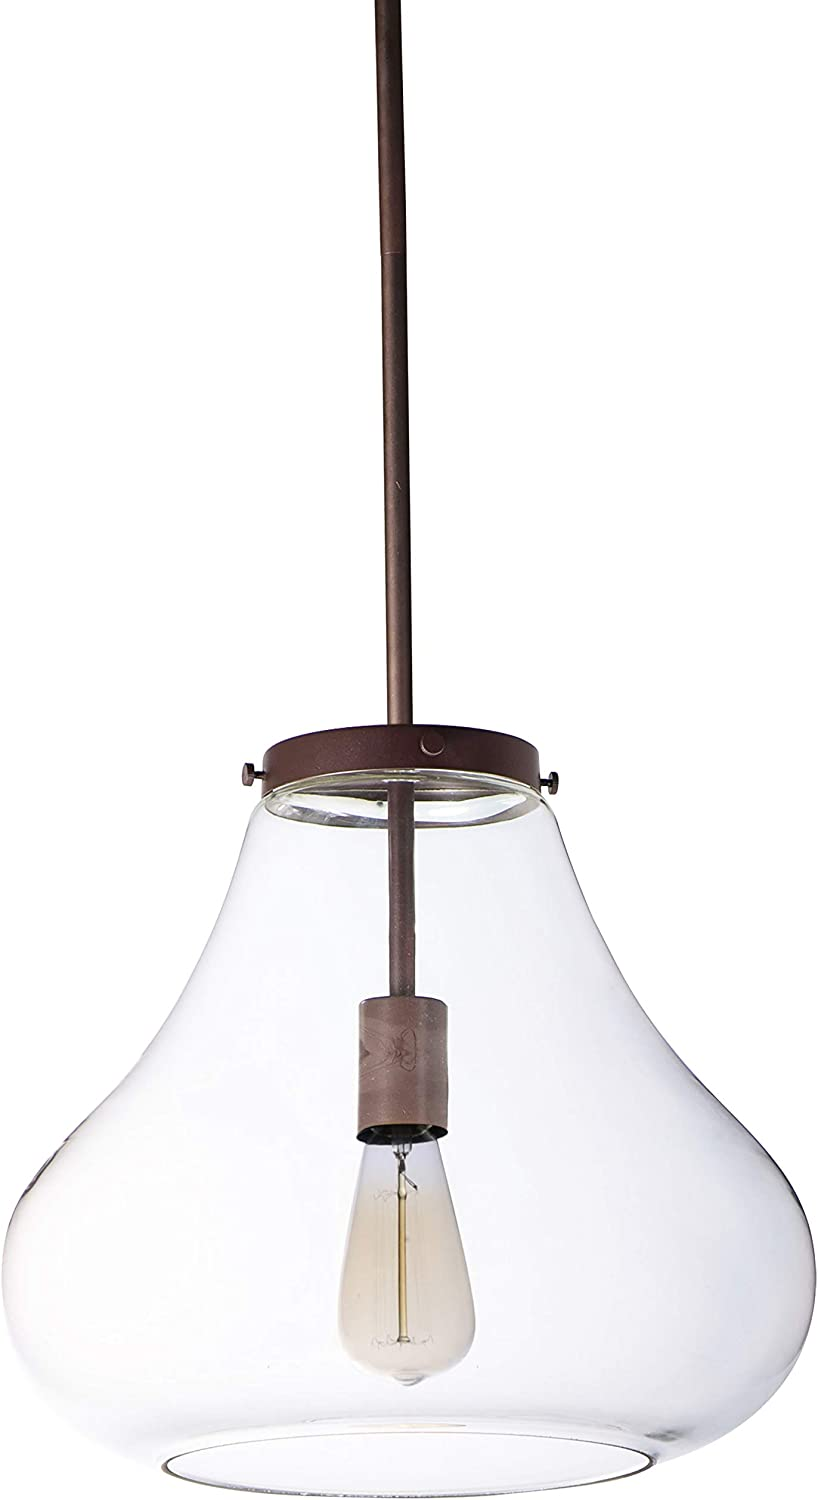 Stone Beam Modern Metal and Glass Hanging Ceiling Pendant Chandelier Fixture with Light Bulb – 13.75 x 13.75 x 14.5 Inches, Bronze